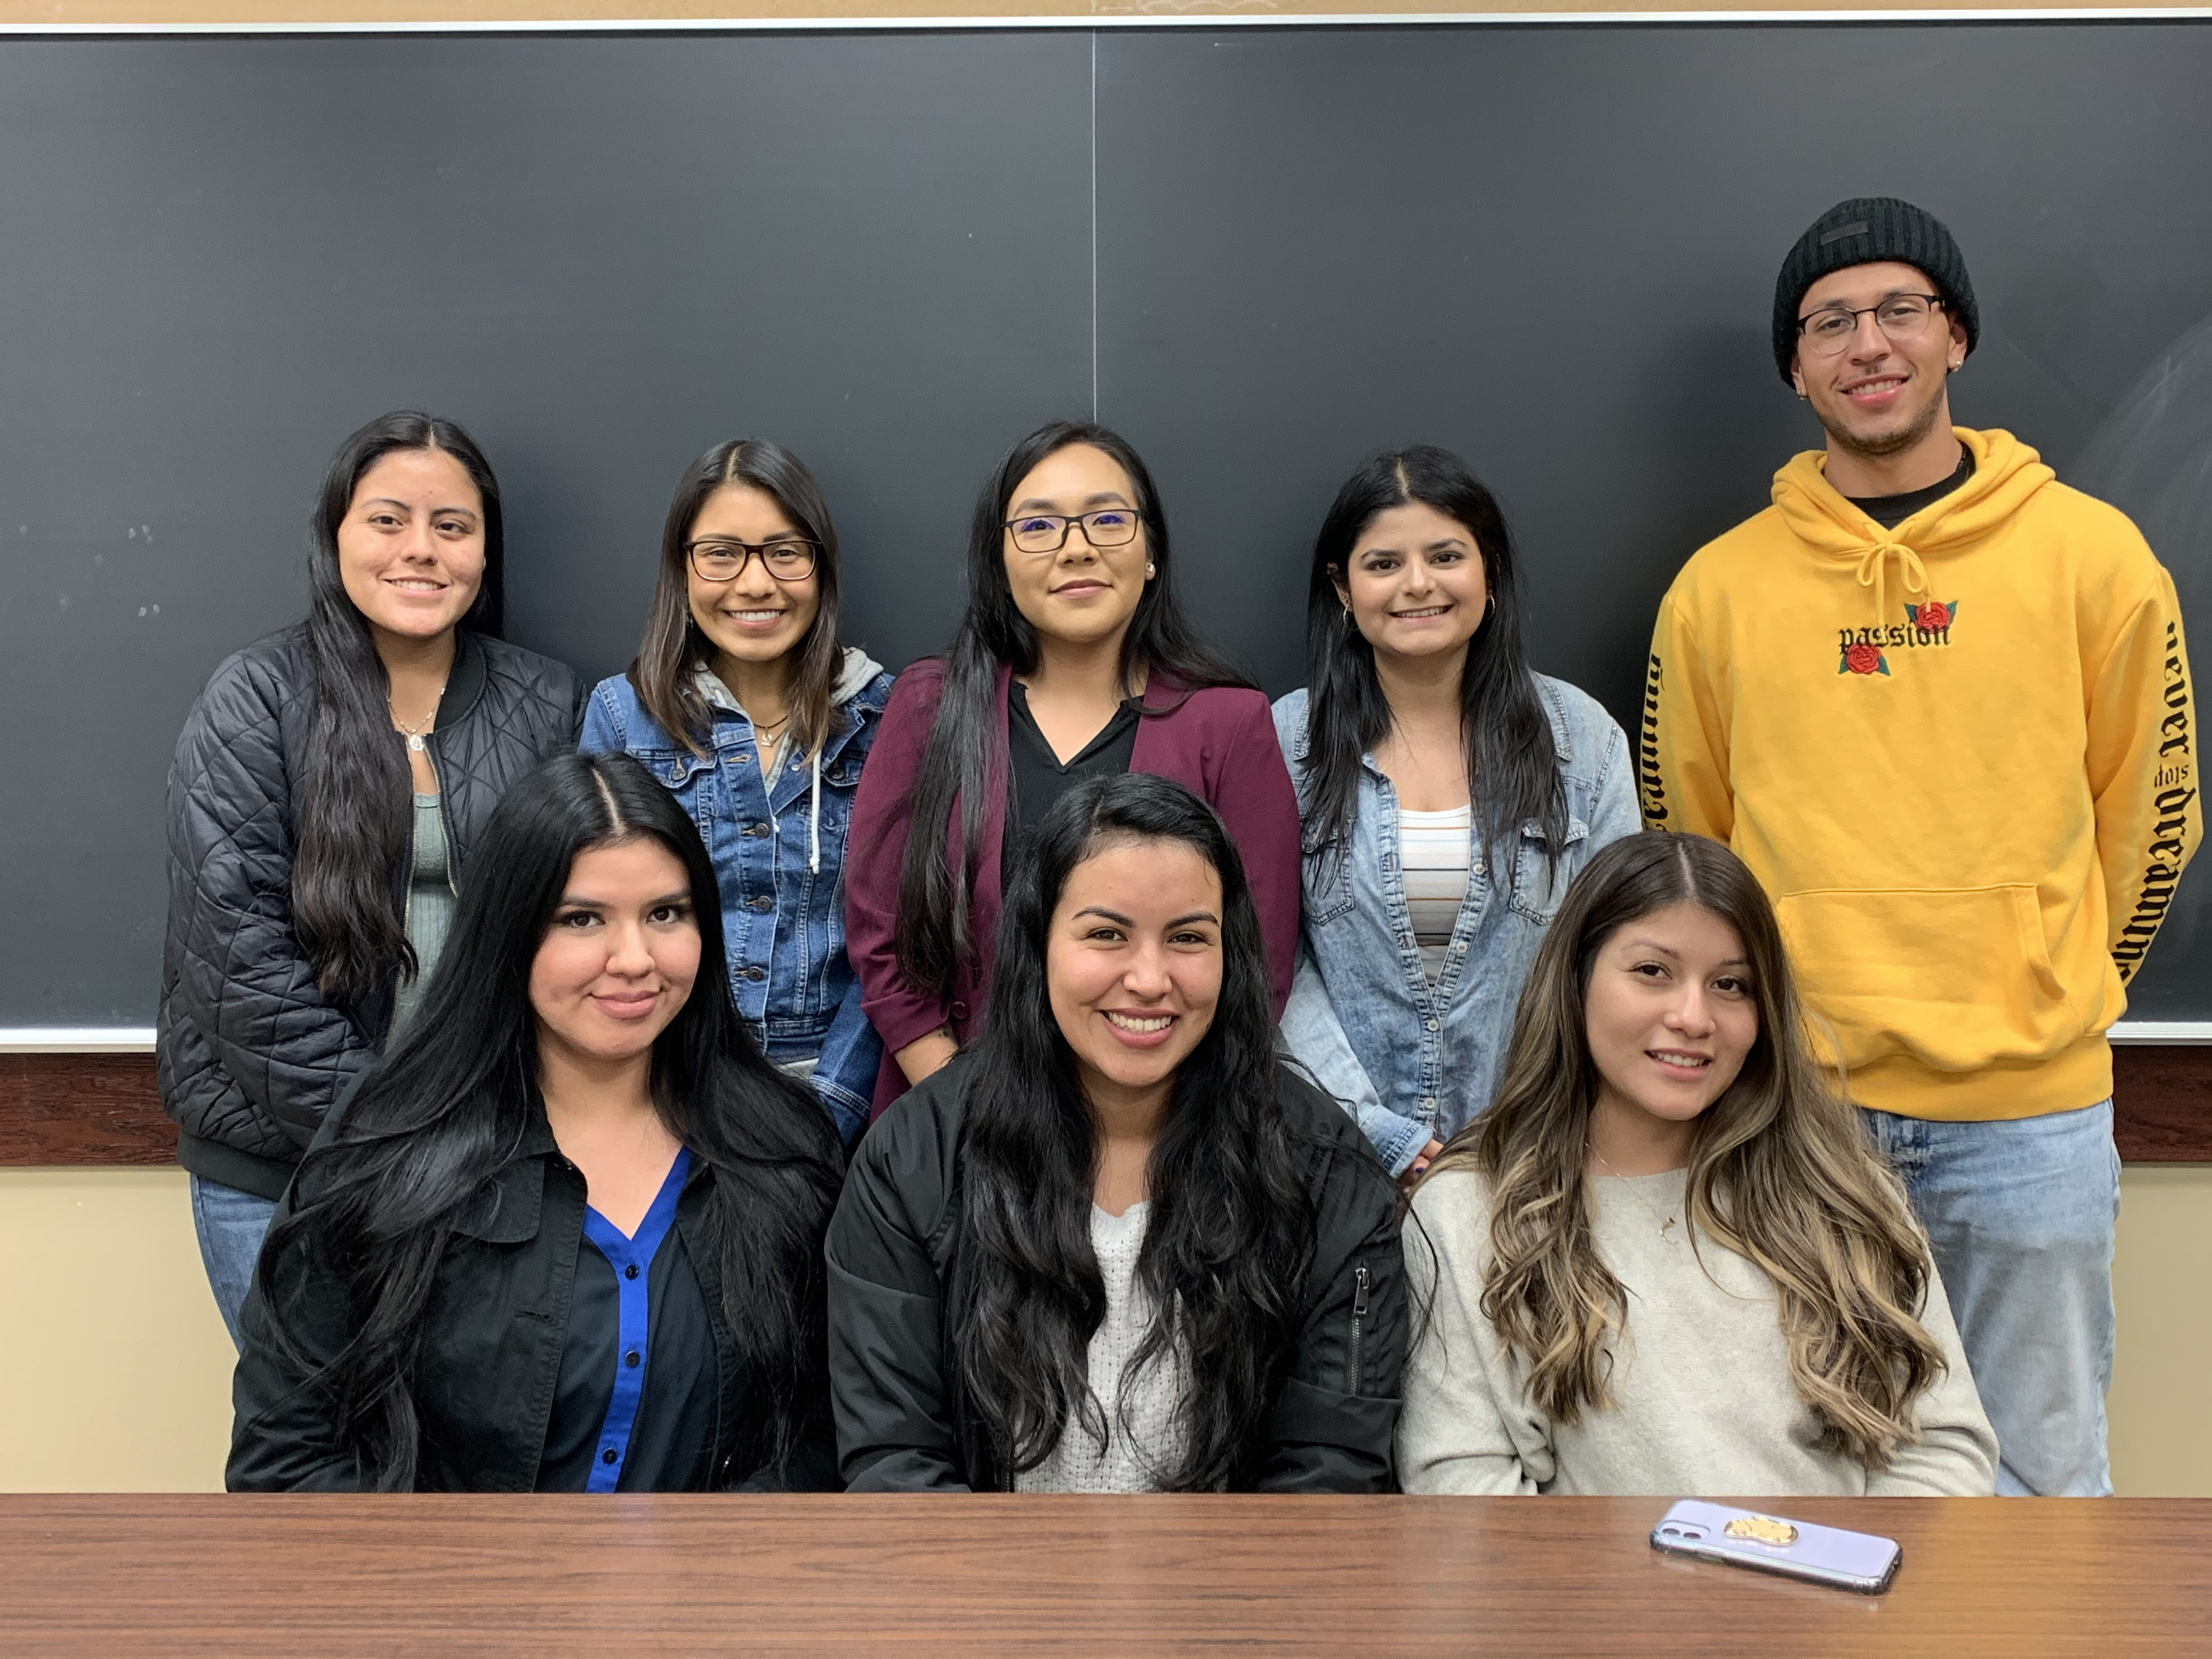 An image of the previous 2019-2020 UndocuBruins Research Program Cohort smiling indoors.